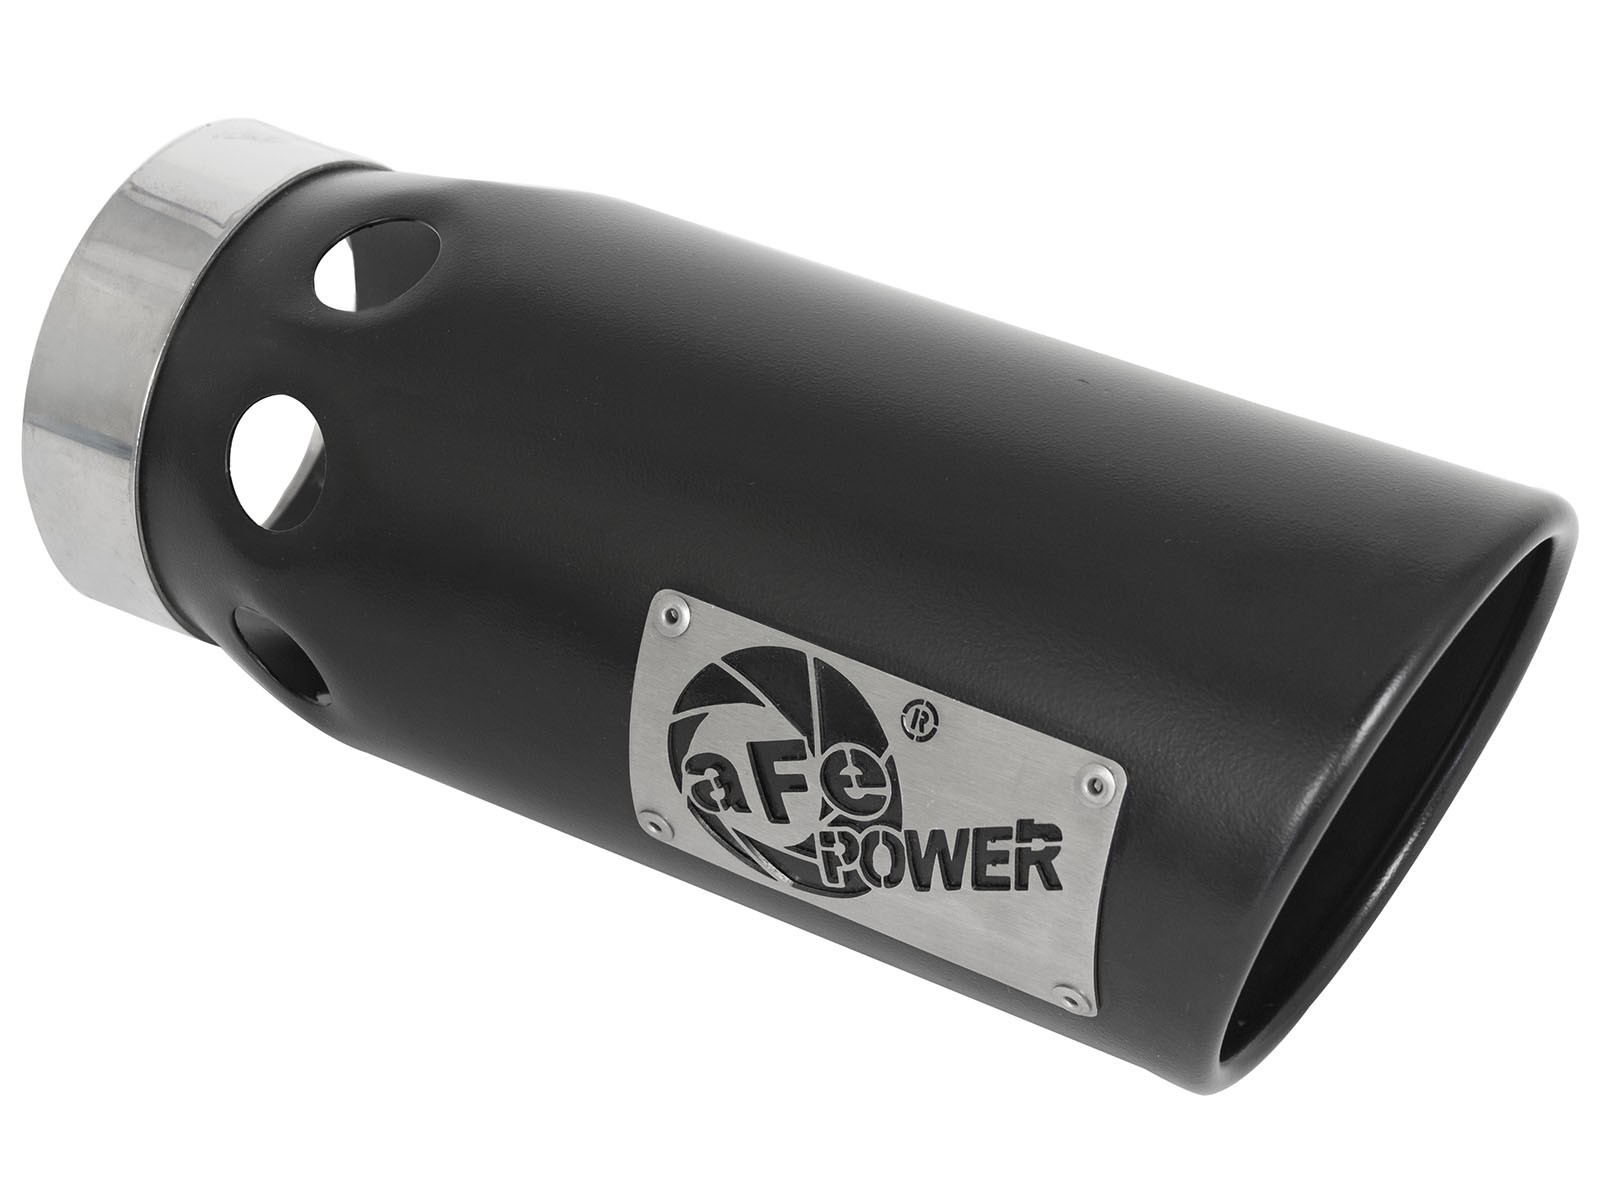 "aFe POWER 49T50601-B161 MACH Force-Xp 5"" 304 Stainless Steel Exhaust Tip"